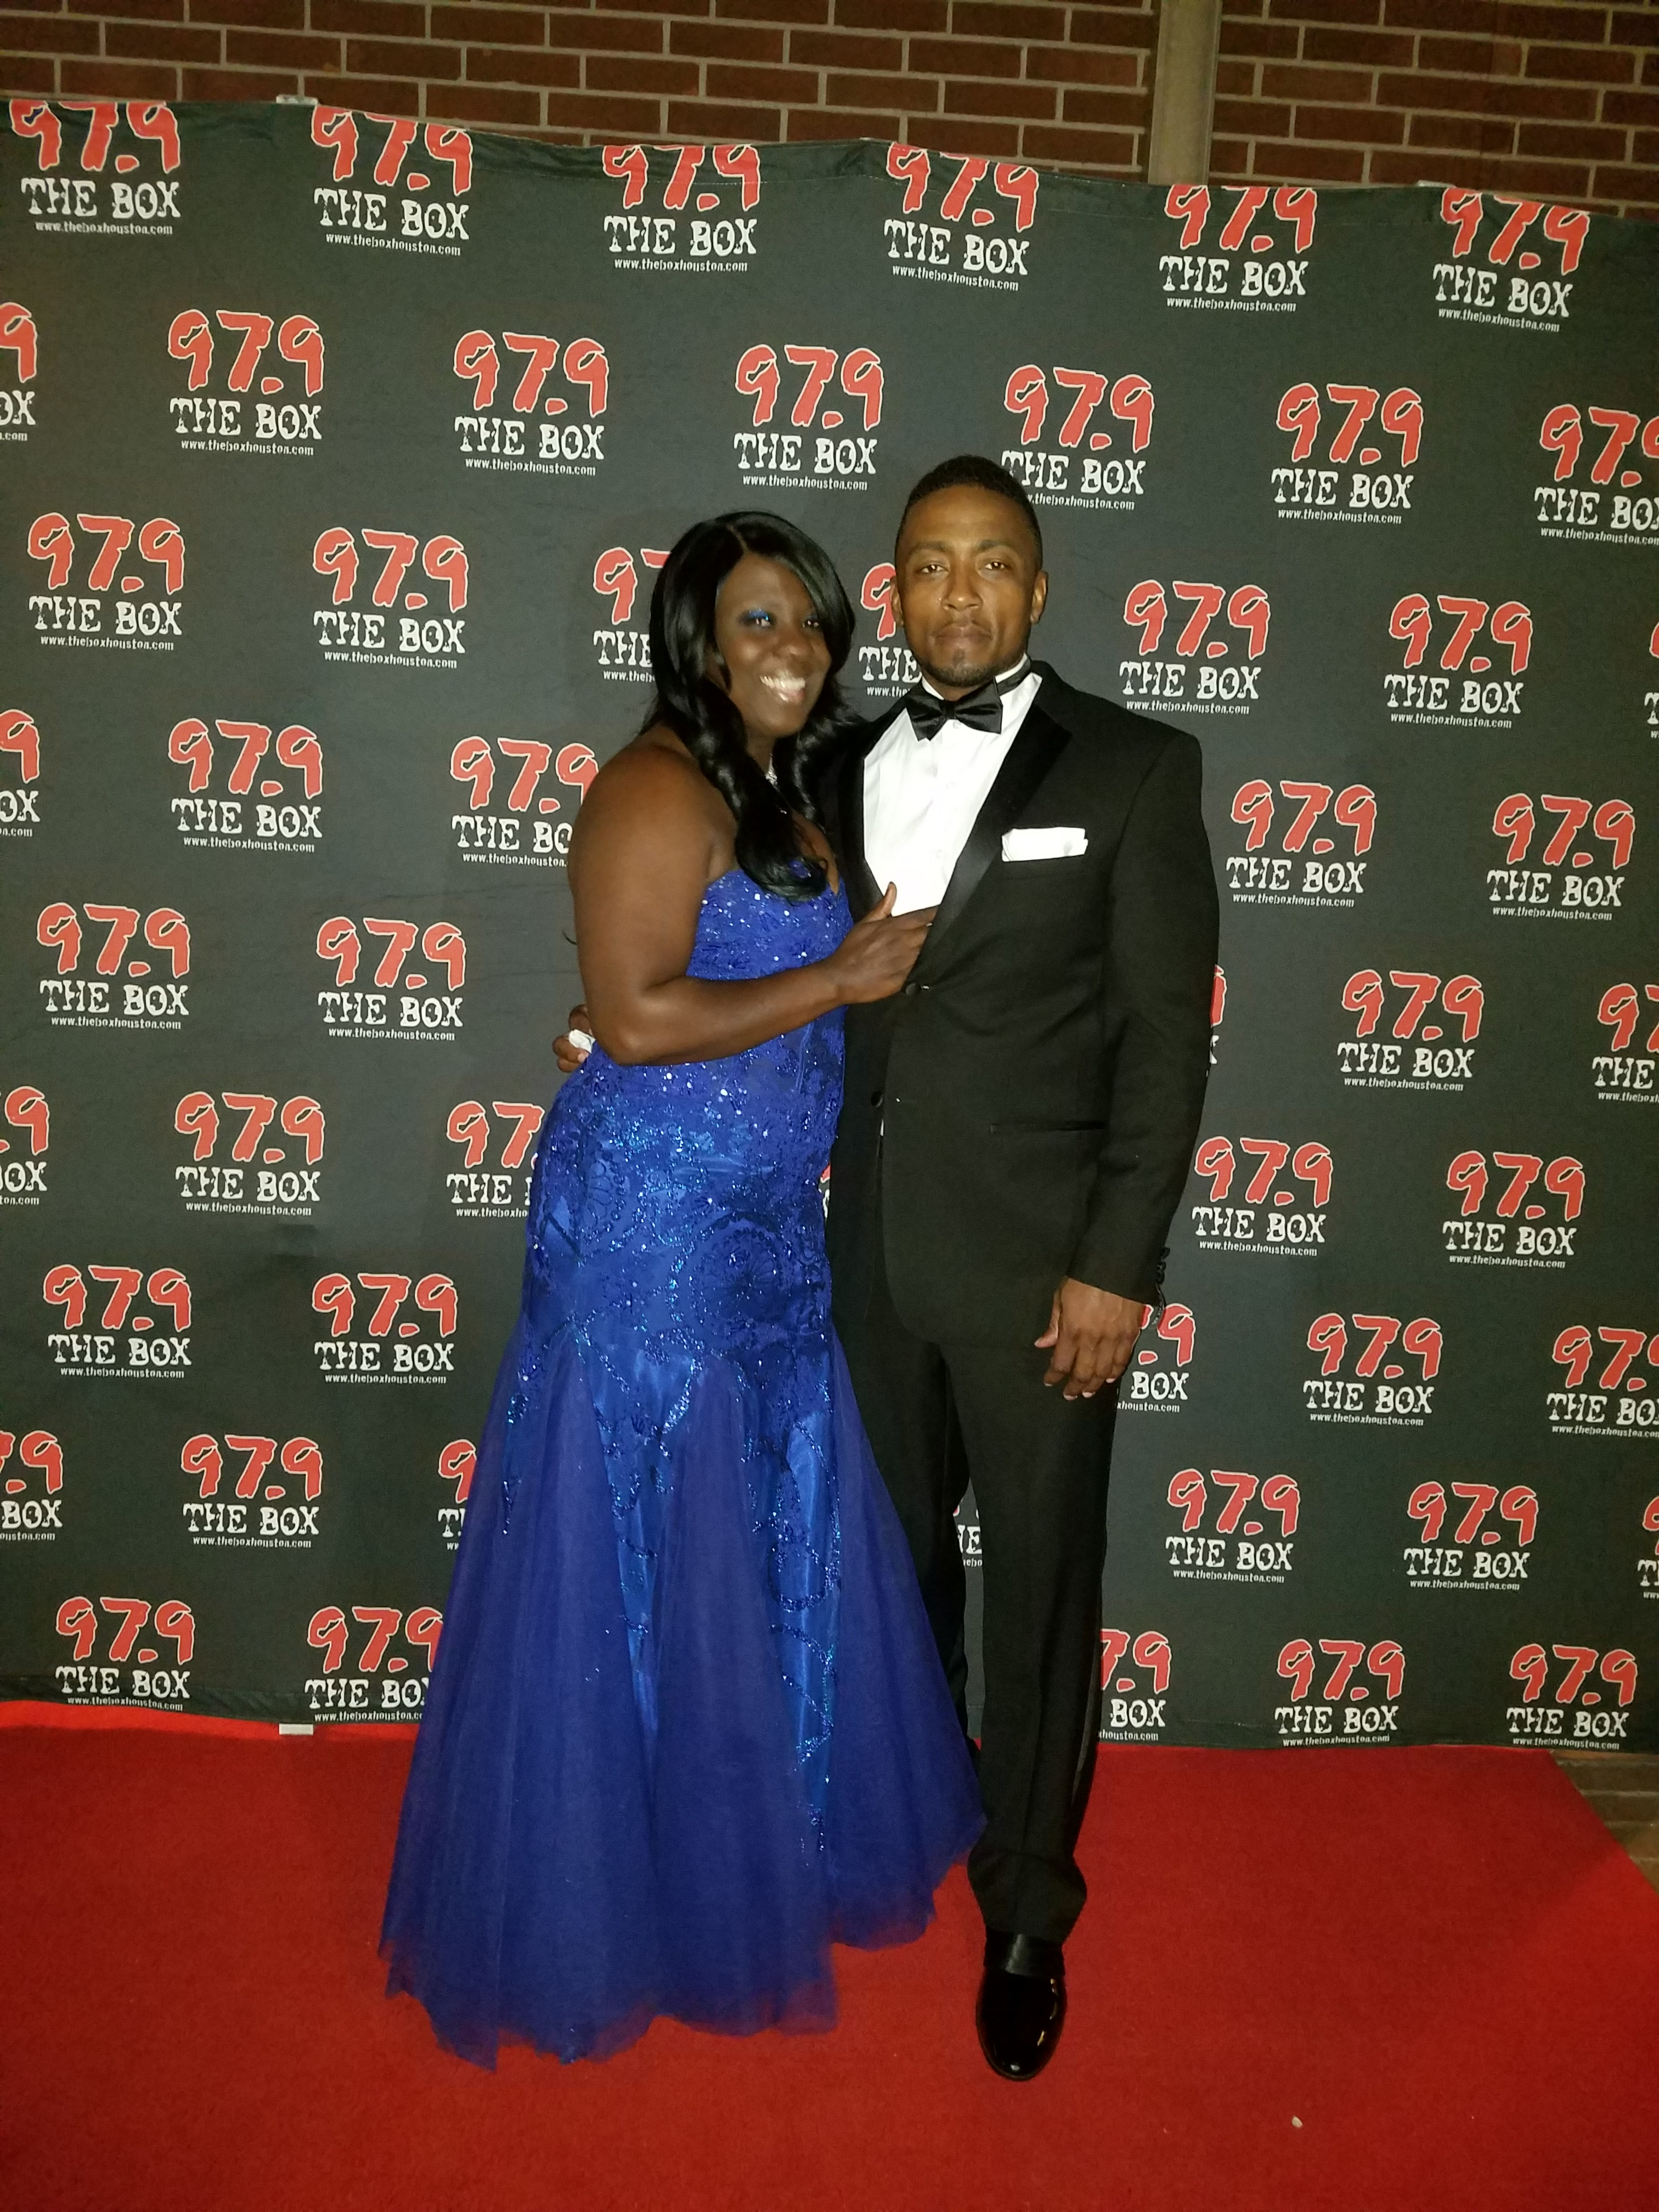 97.9 Prom Night Photo Gallery